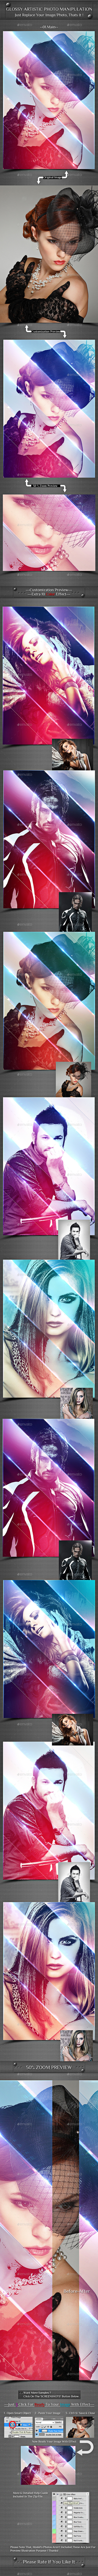 Glossy Artistic Photo Manipulation - Photo Templates Graphics